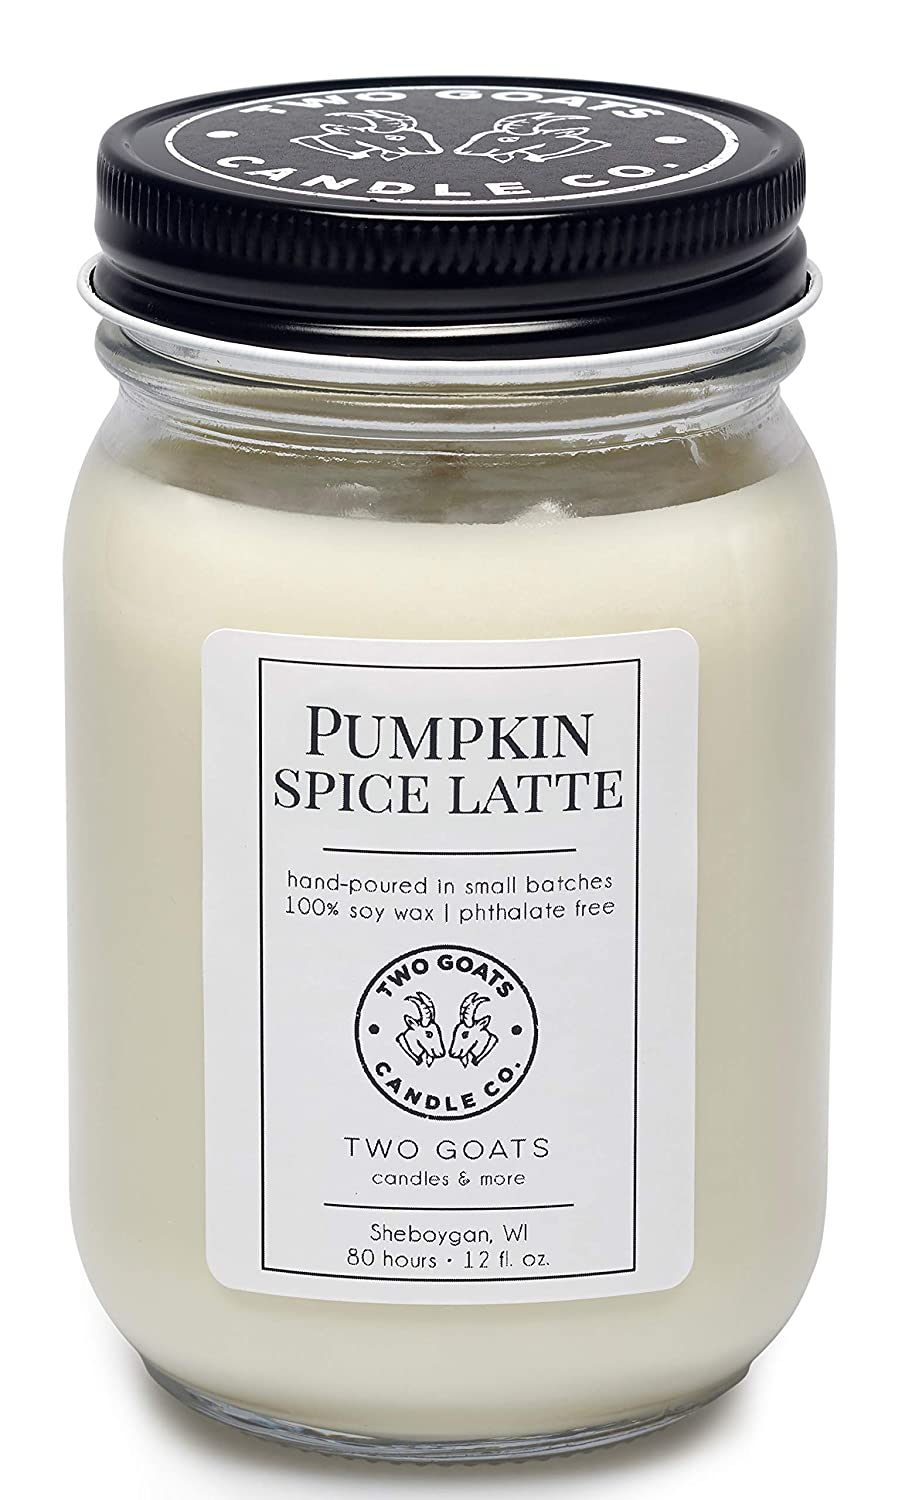 Max 44% OFF Pumpkin Spice Latte Scented Soy Candle Hand in USA Poured Genuine the